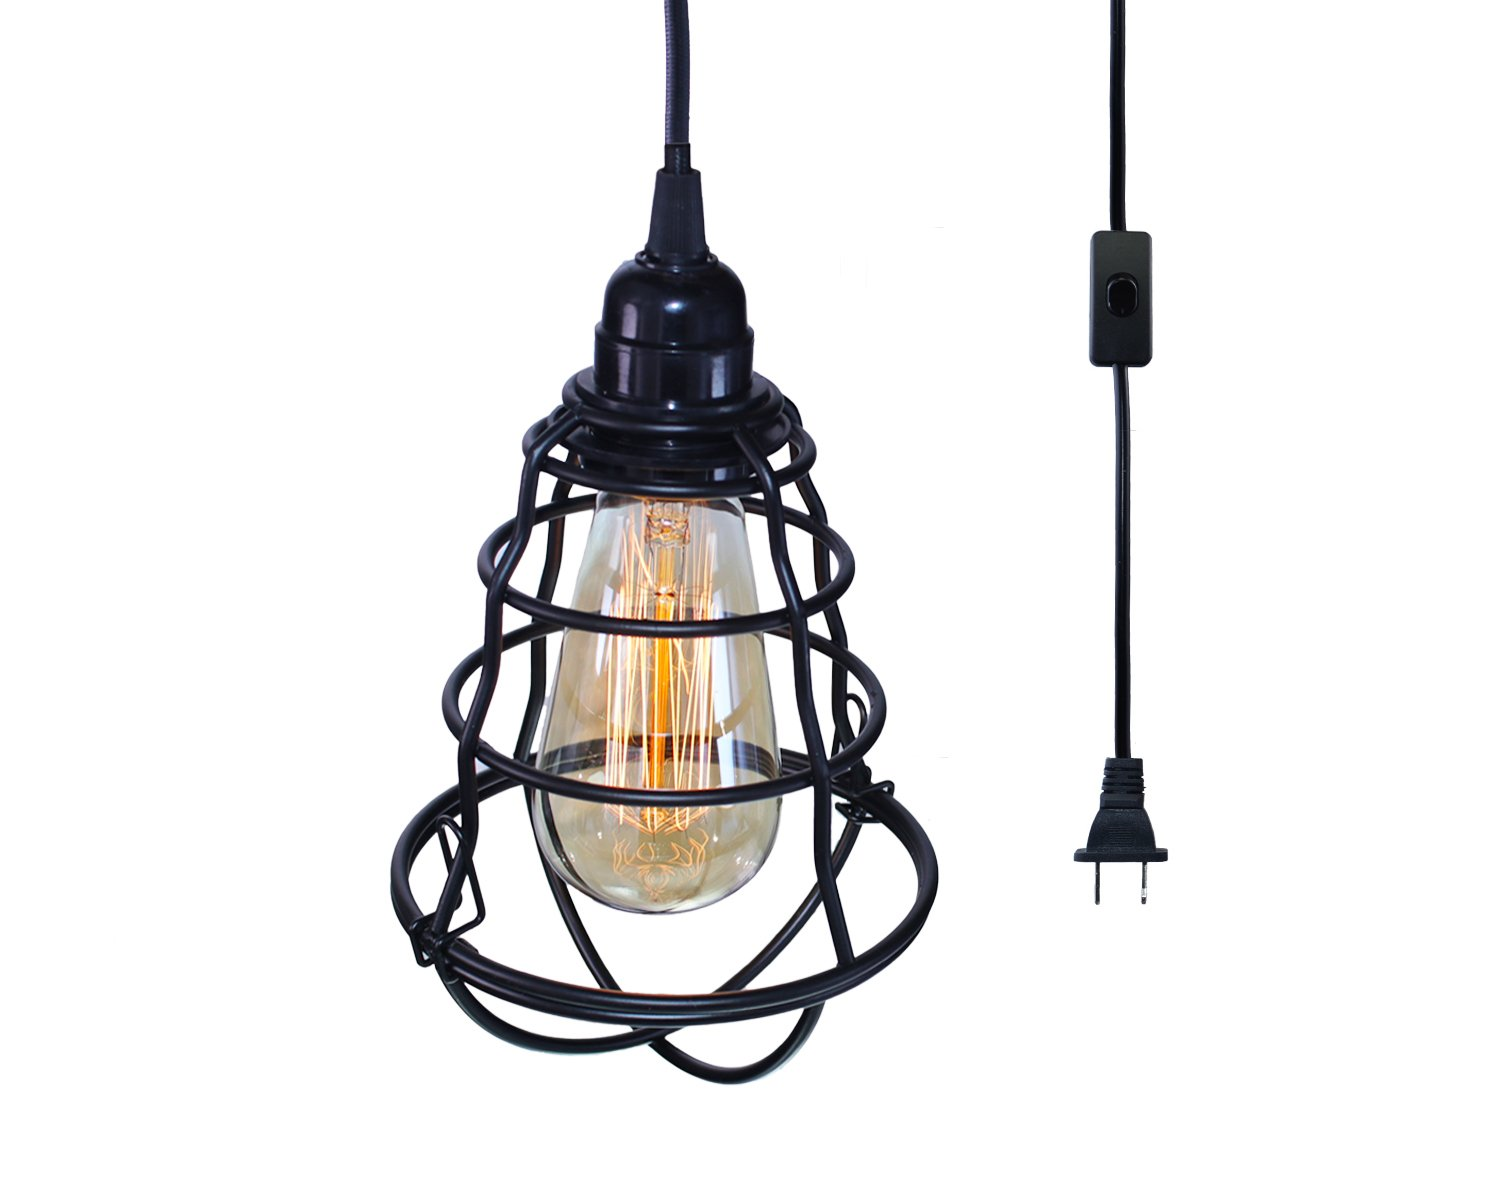 INNOCCY Industrial Plug in Pendant Light Metal Vintage Hanging Cage Pendant Lighting E26 E27 Mini Pendant Light Edison Plug in Light Fixture On/Off Switch